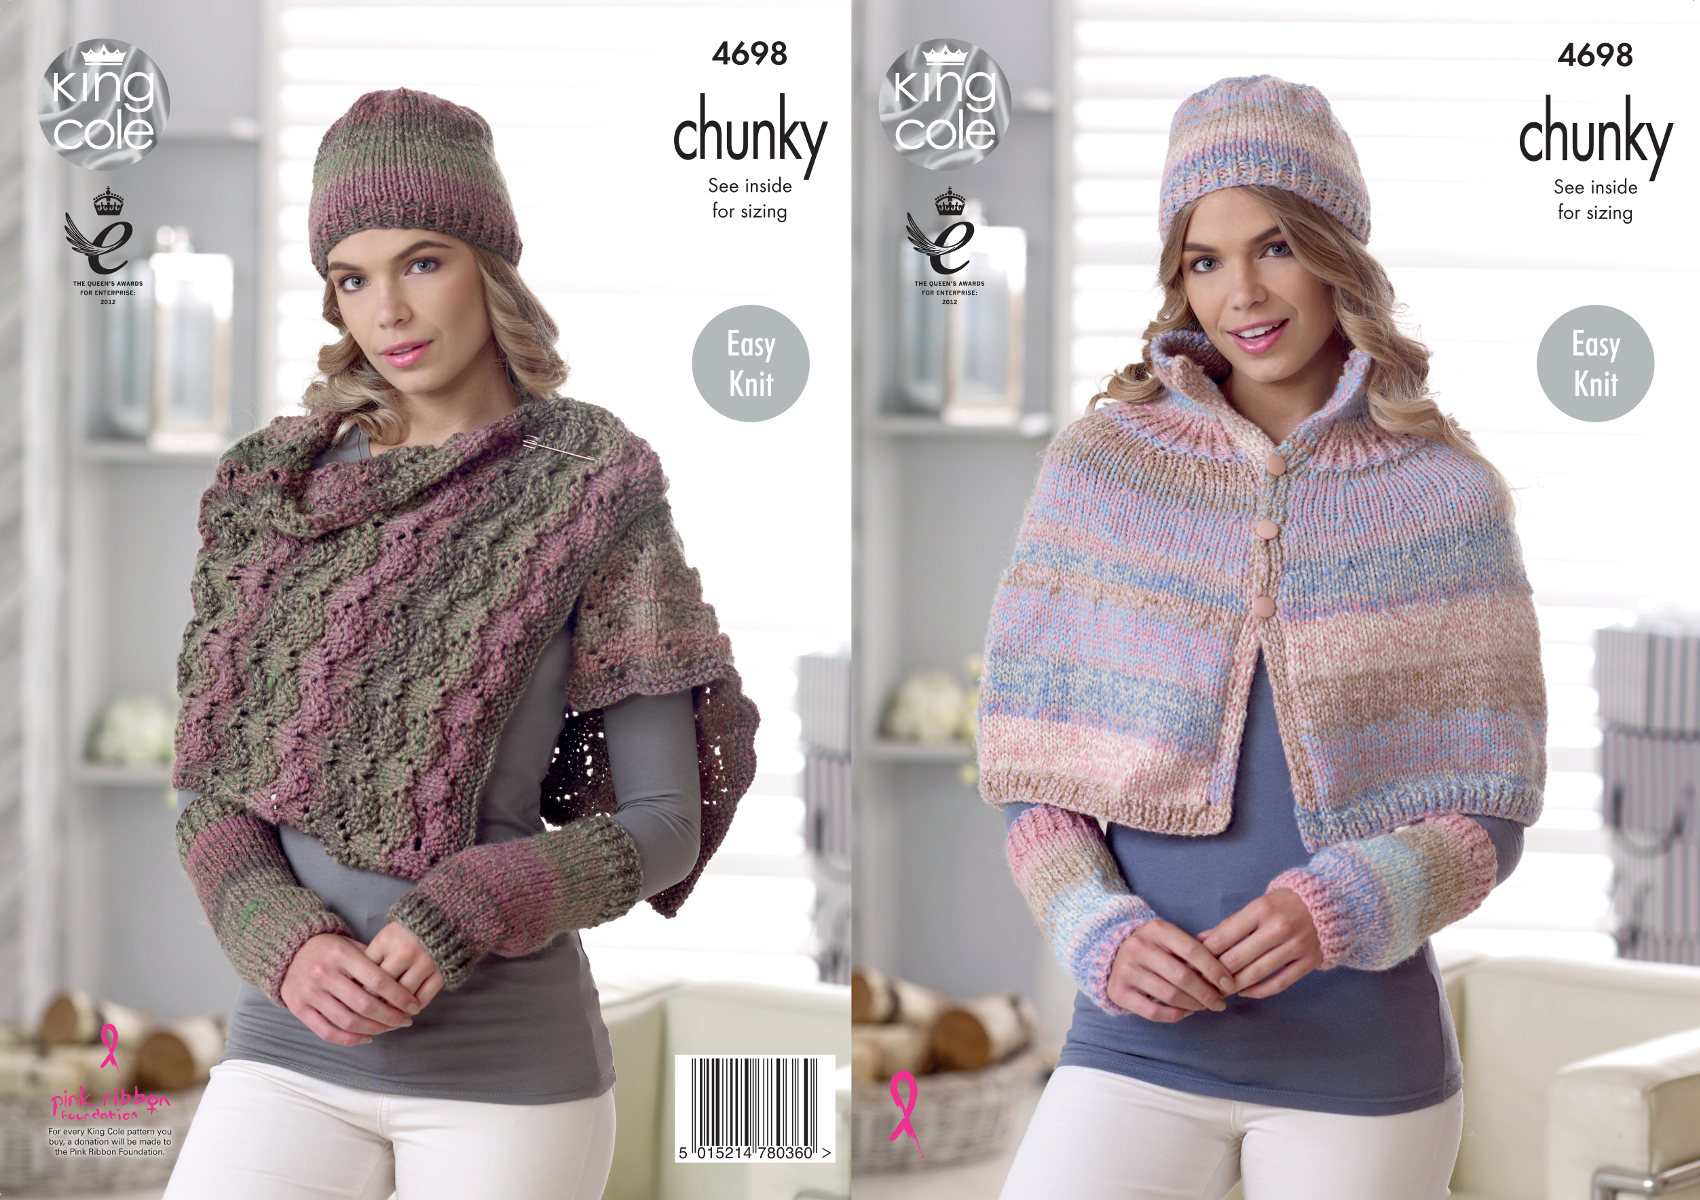 King Cole Ladies Chunky Knitting Pattern Easy Knit Cape Wrap Wrist ...